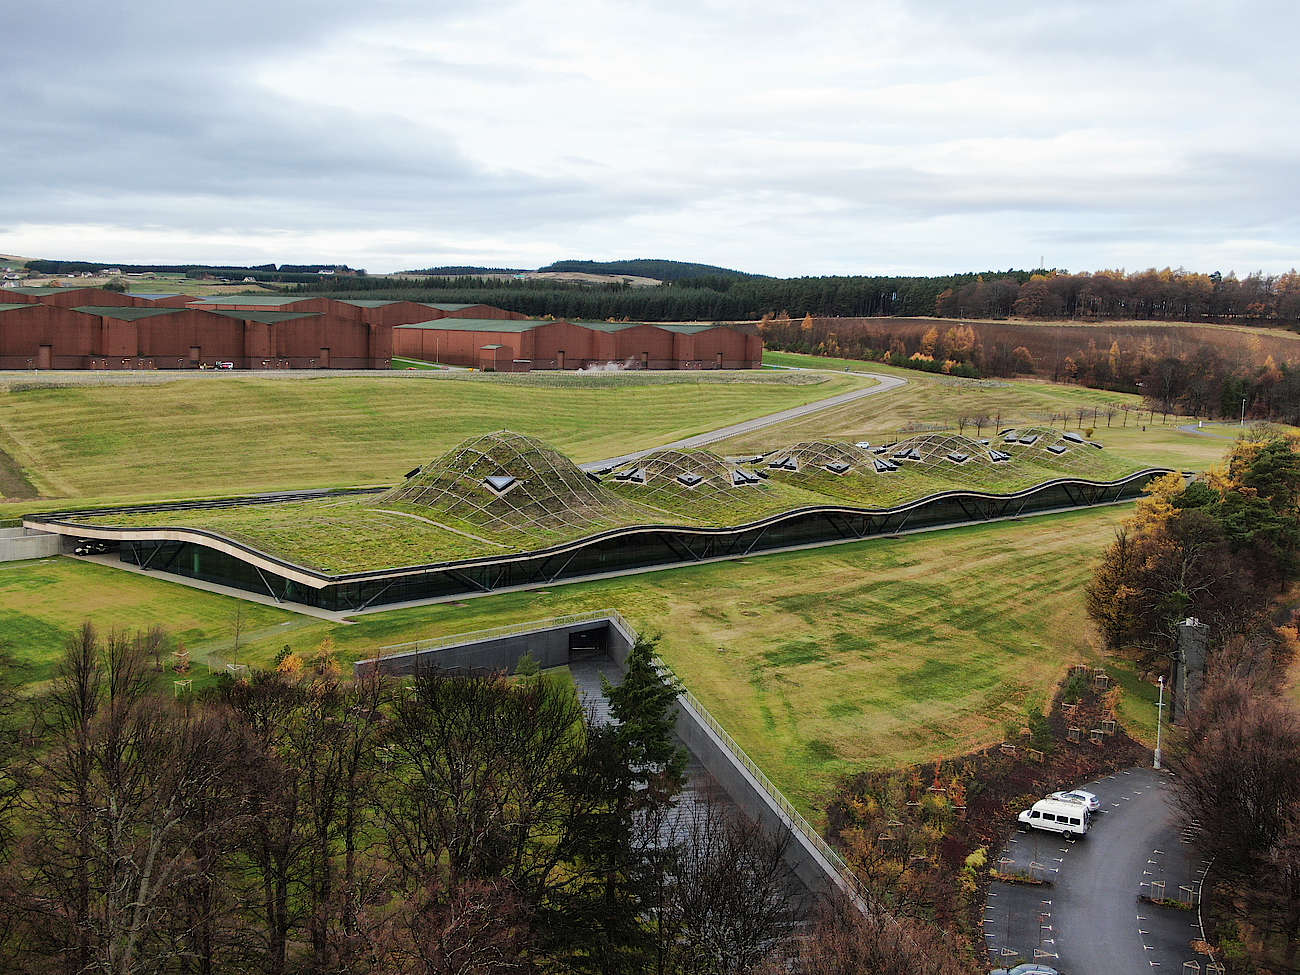 Macallan distillery uploaded by Ben, 10. Dec 2018